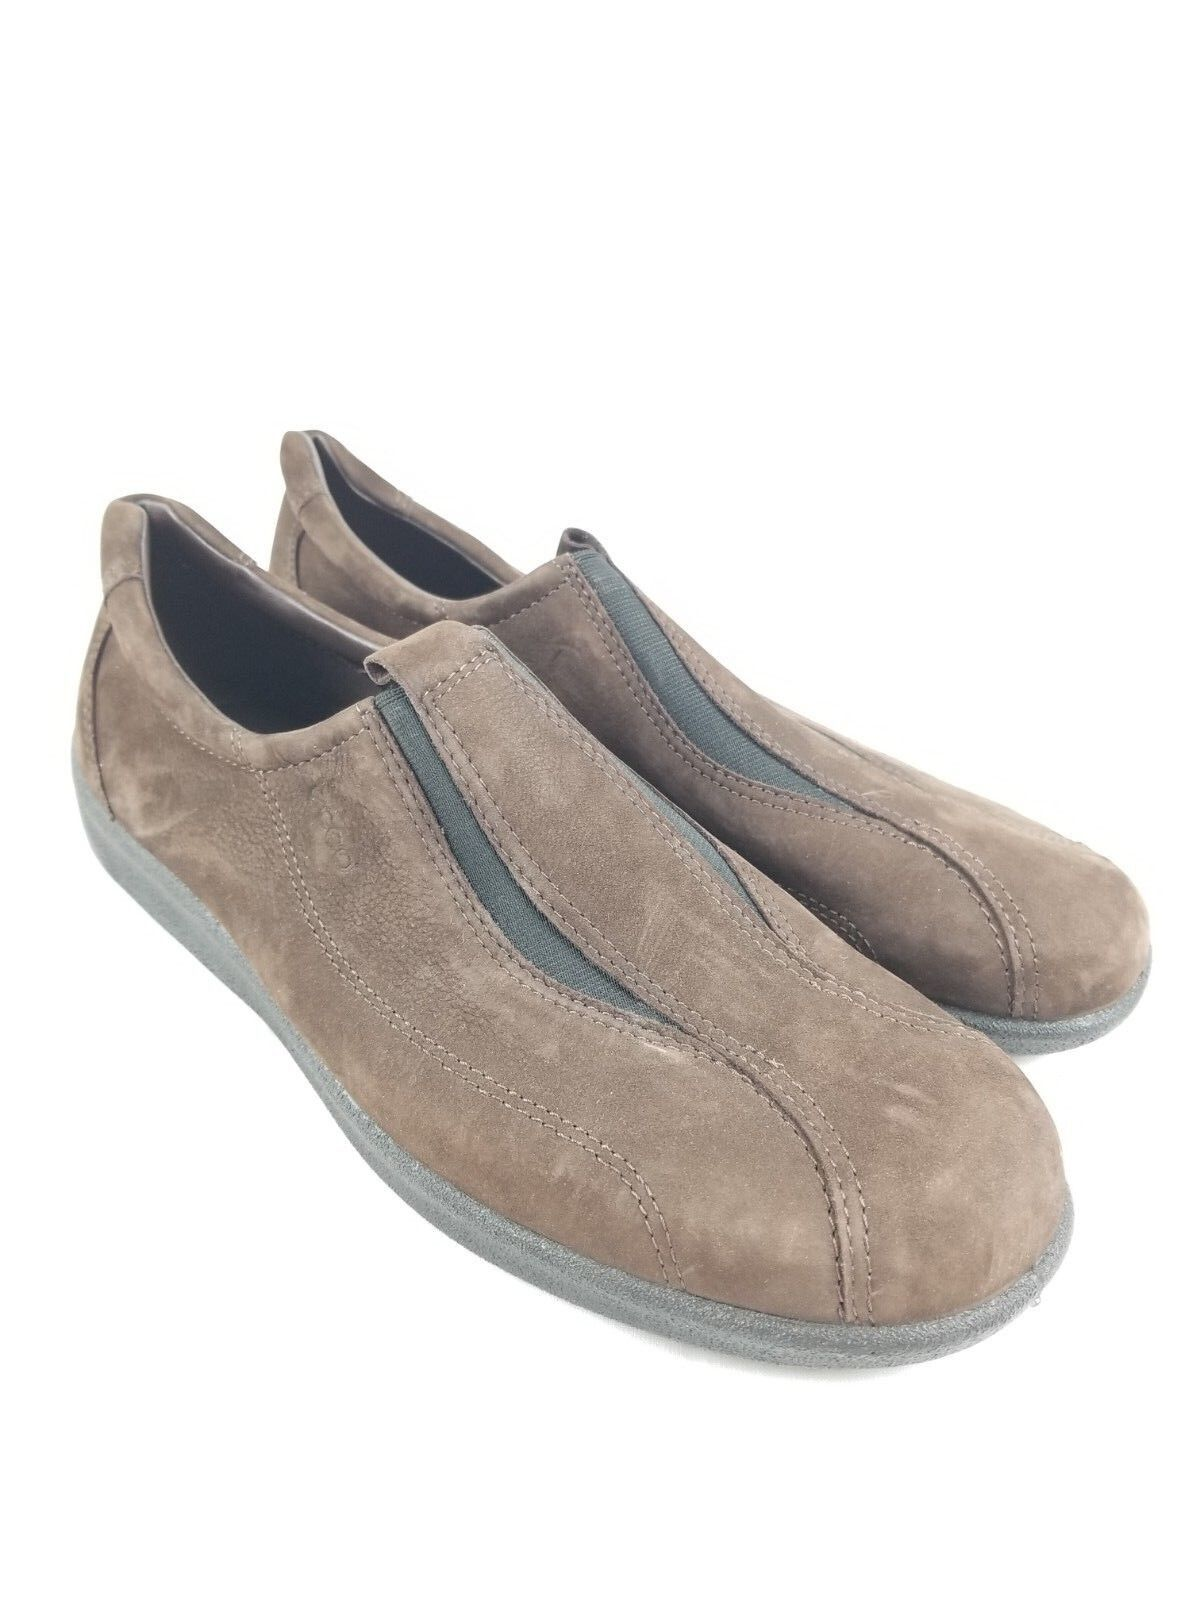 Ecco Womens Brown Slip On Loafer shoes US 10 10.5 M EUR 41 vegetable tanned Suede